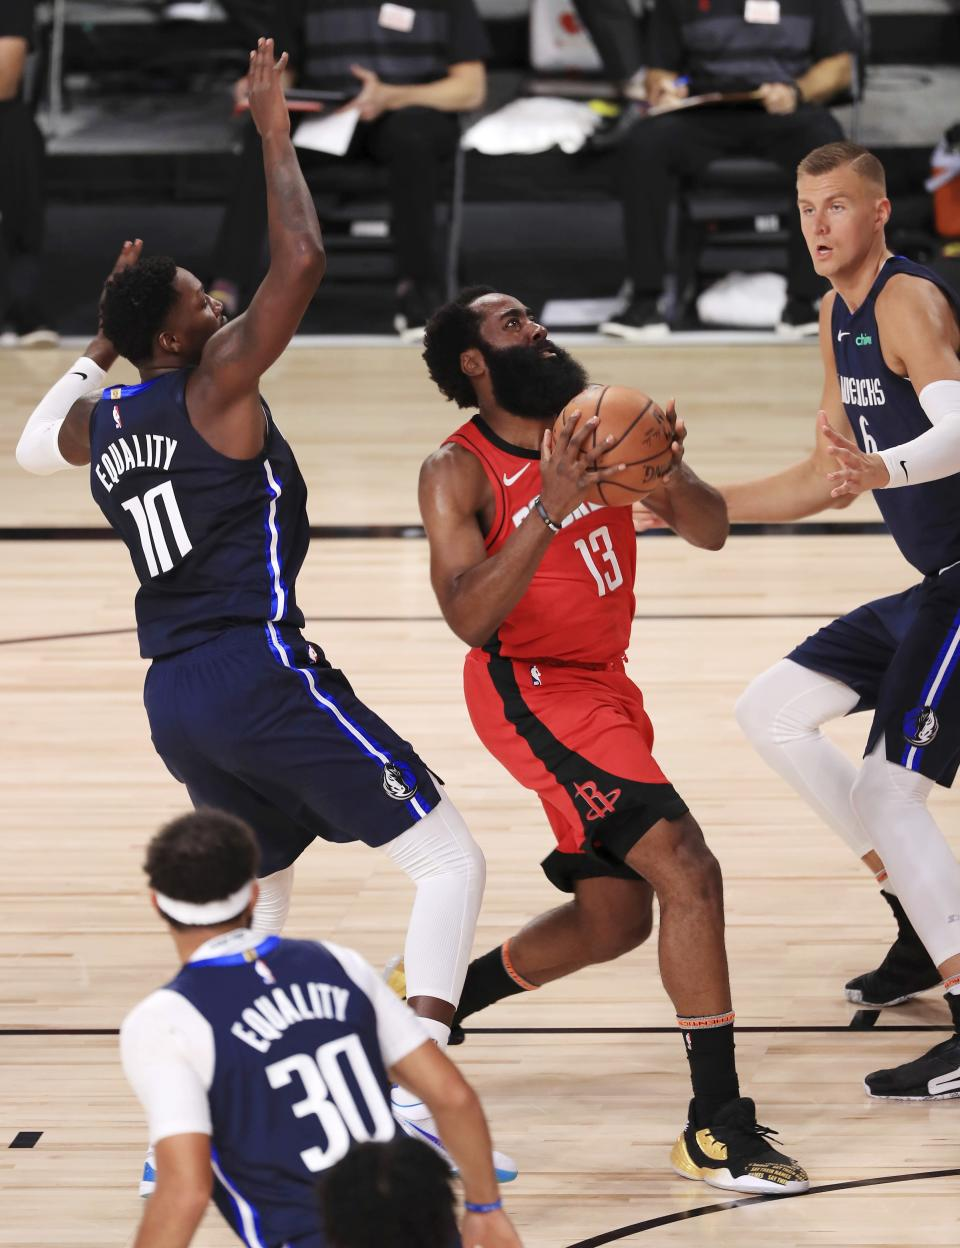 Houston Rockets James Harden (13) drives to the basket against the Dallas Mavericks during the first half of an NBA basketball game Friday, July 31, 2020, in Lake Buena Vista, Fla. (Mike Ehrmann/Pool Photo via AP)